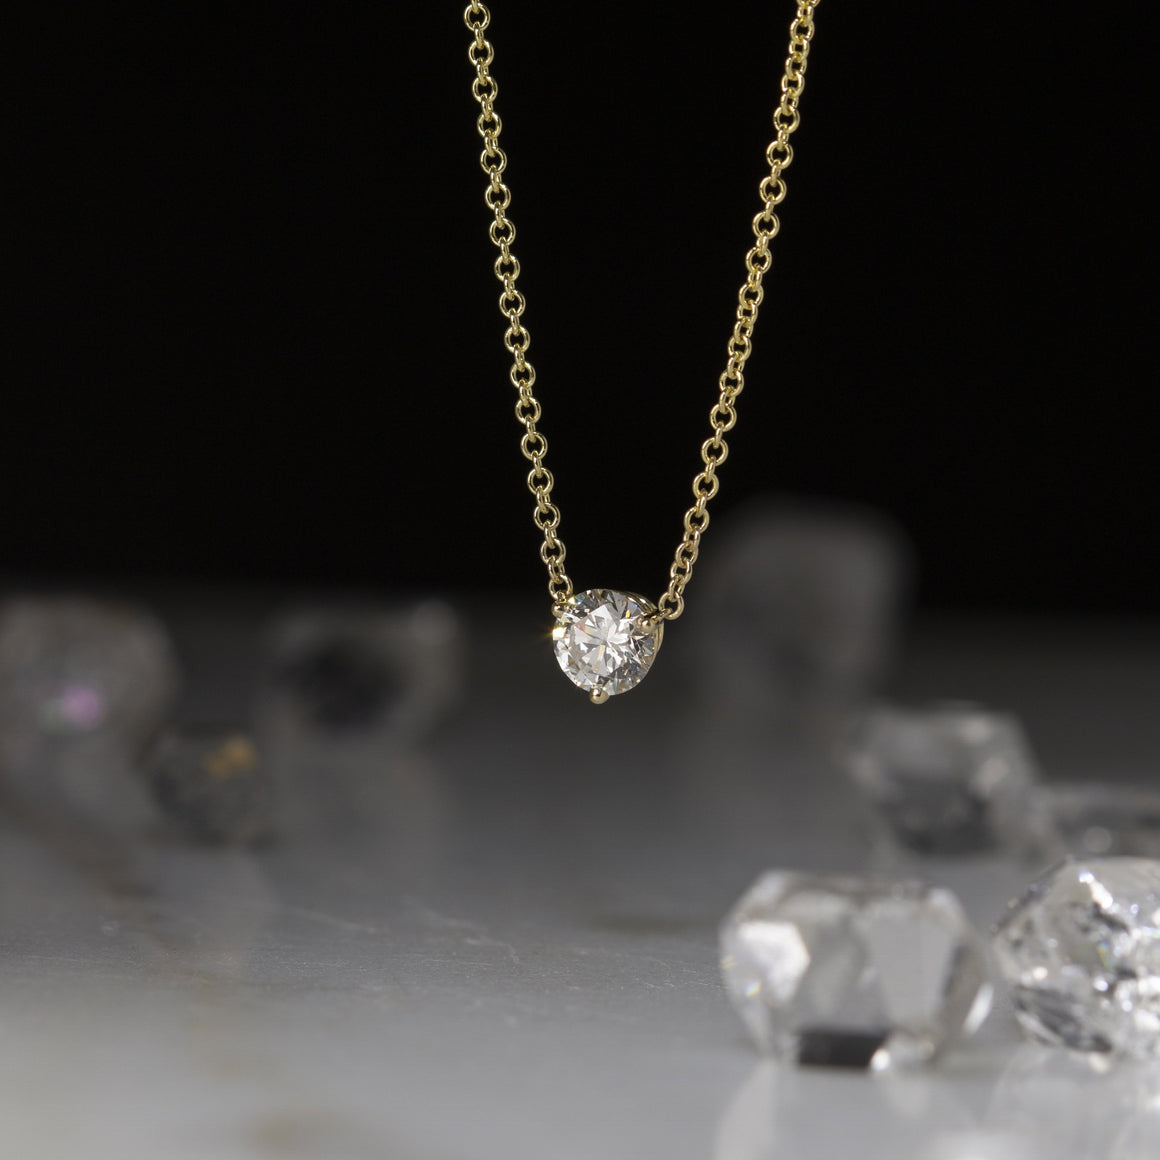 Diamond Solitaire Necklace in Yellow Gold - 1/2 carat